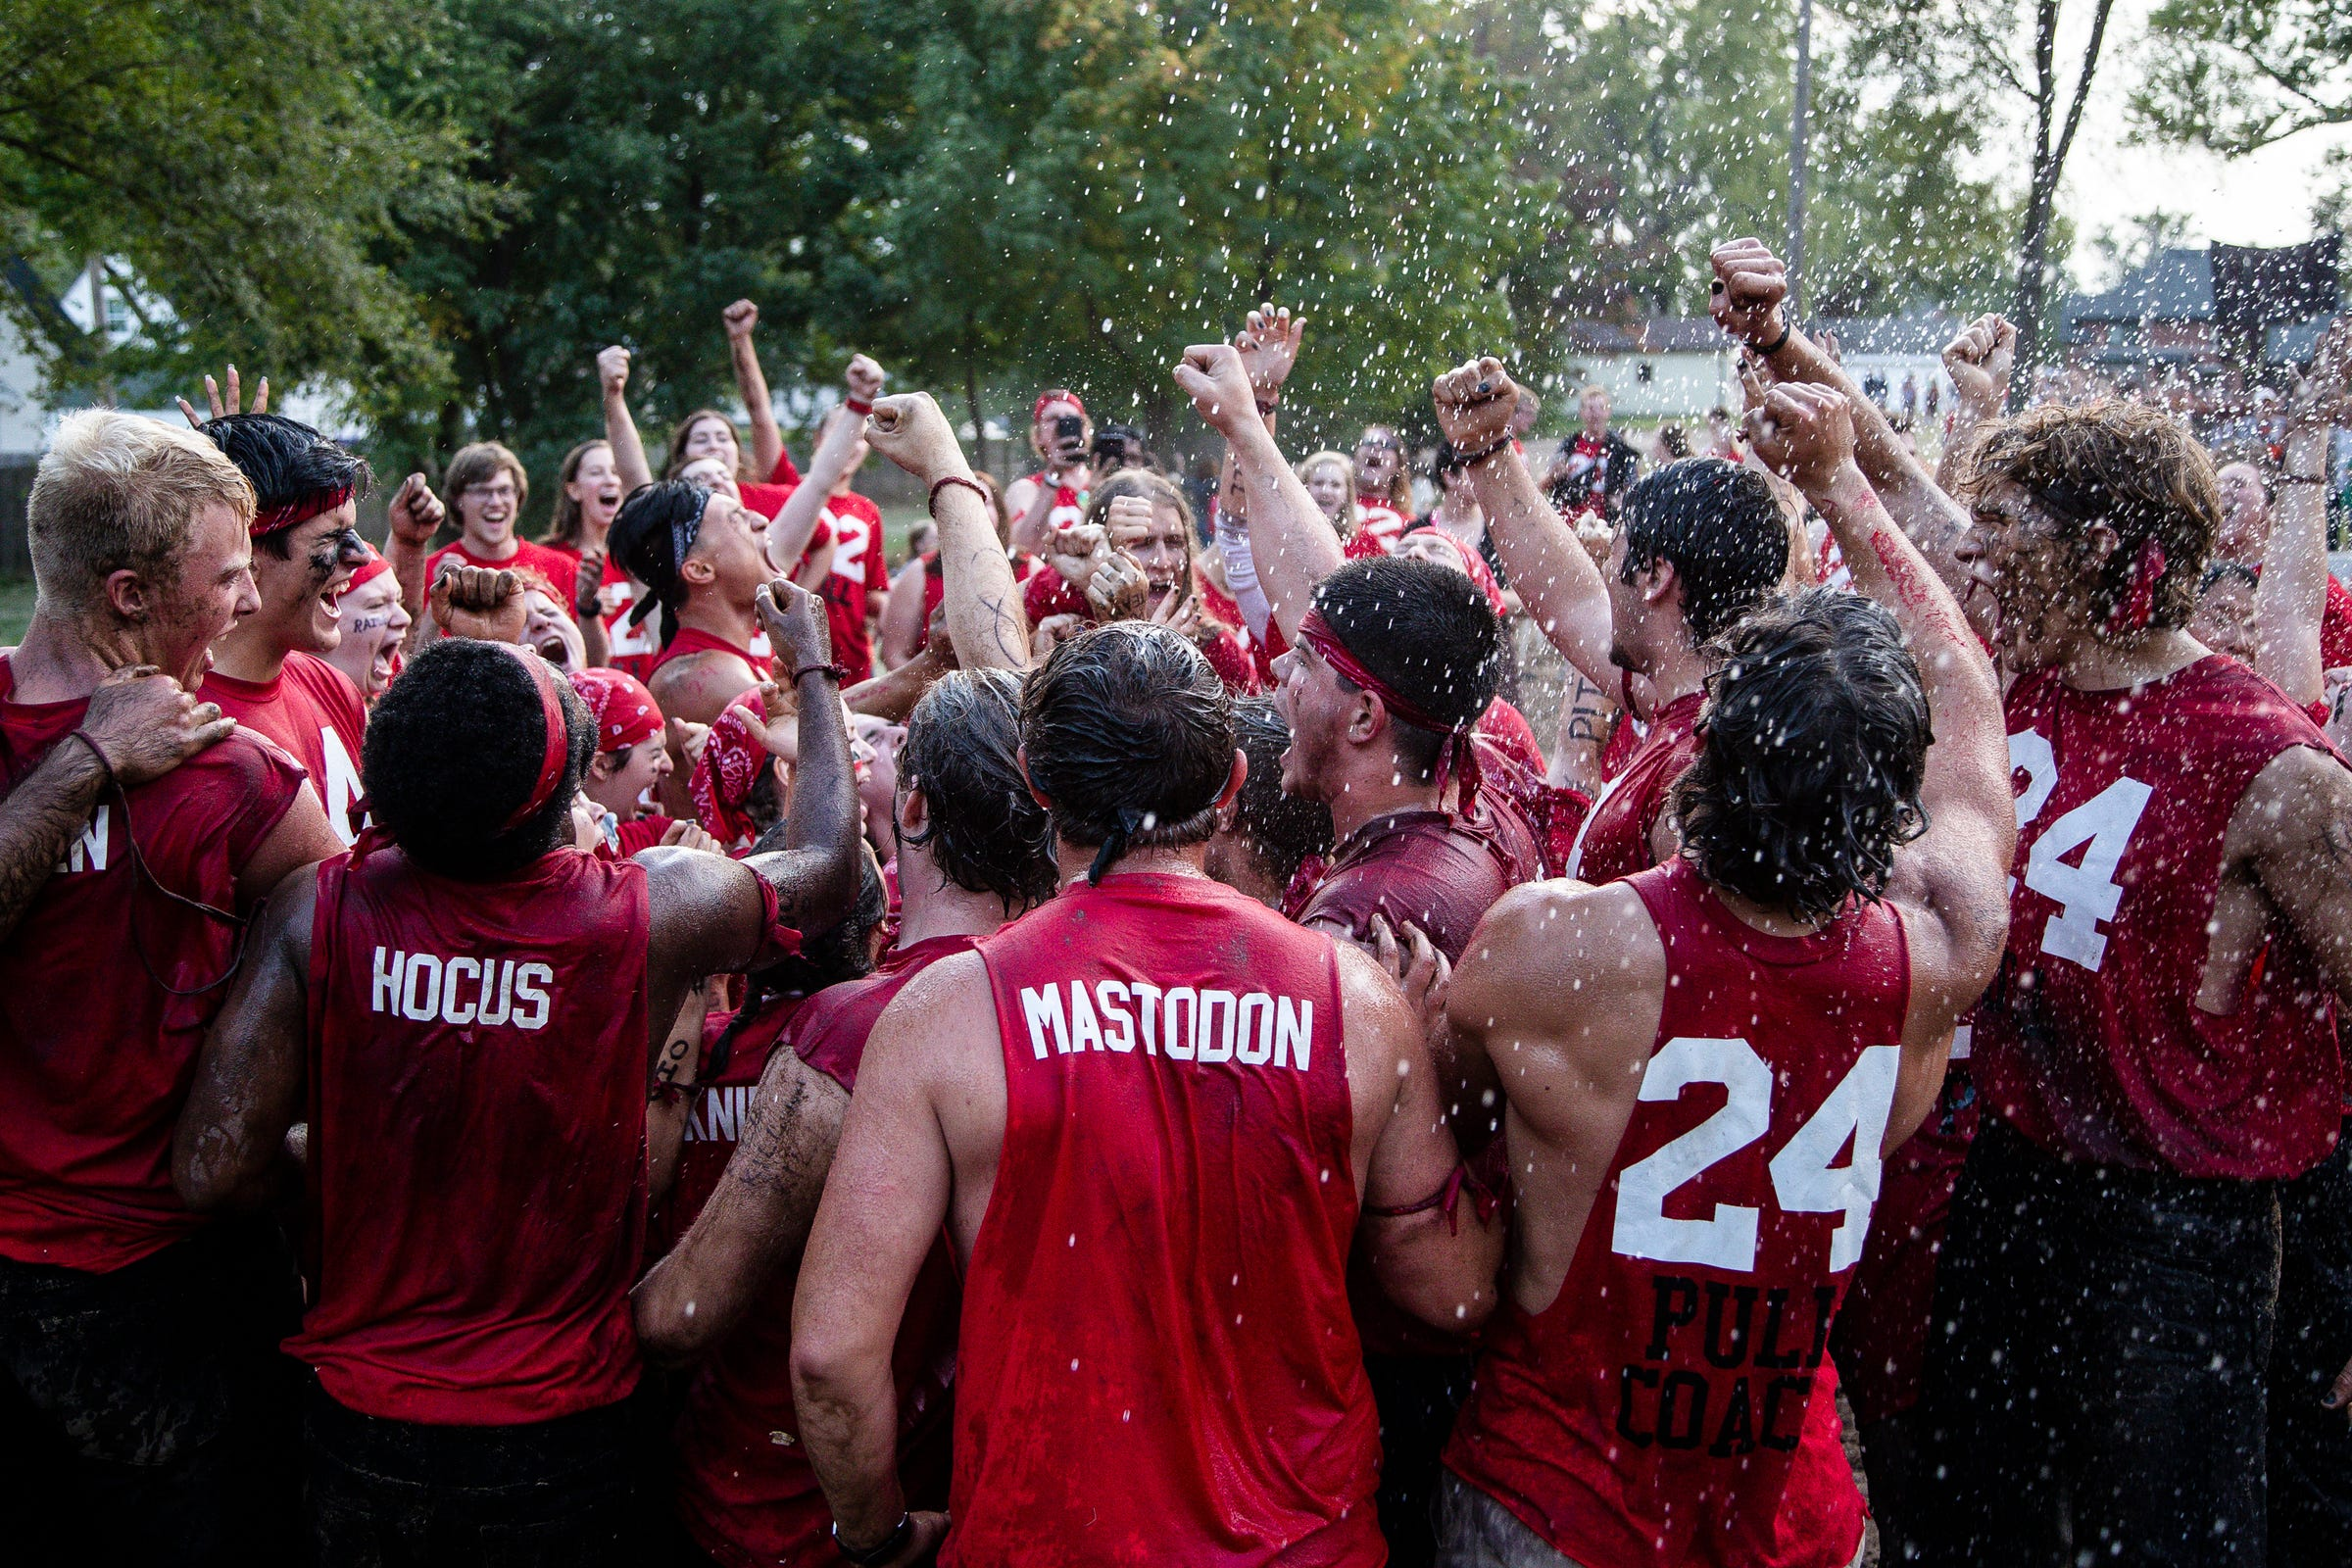 Members of the even year pull team celebrate their win over the odd year team during The Pull, an annual tug-of-war between the freshman and sophomore classes at Hope College in Holland on Saturday, Oct. 2, 2021.